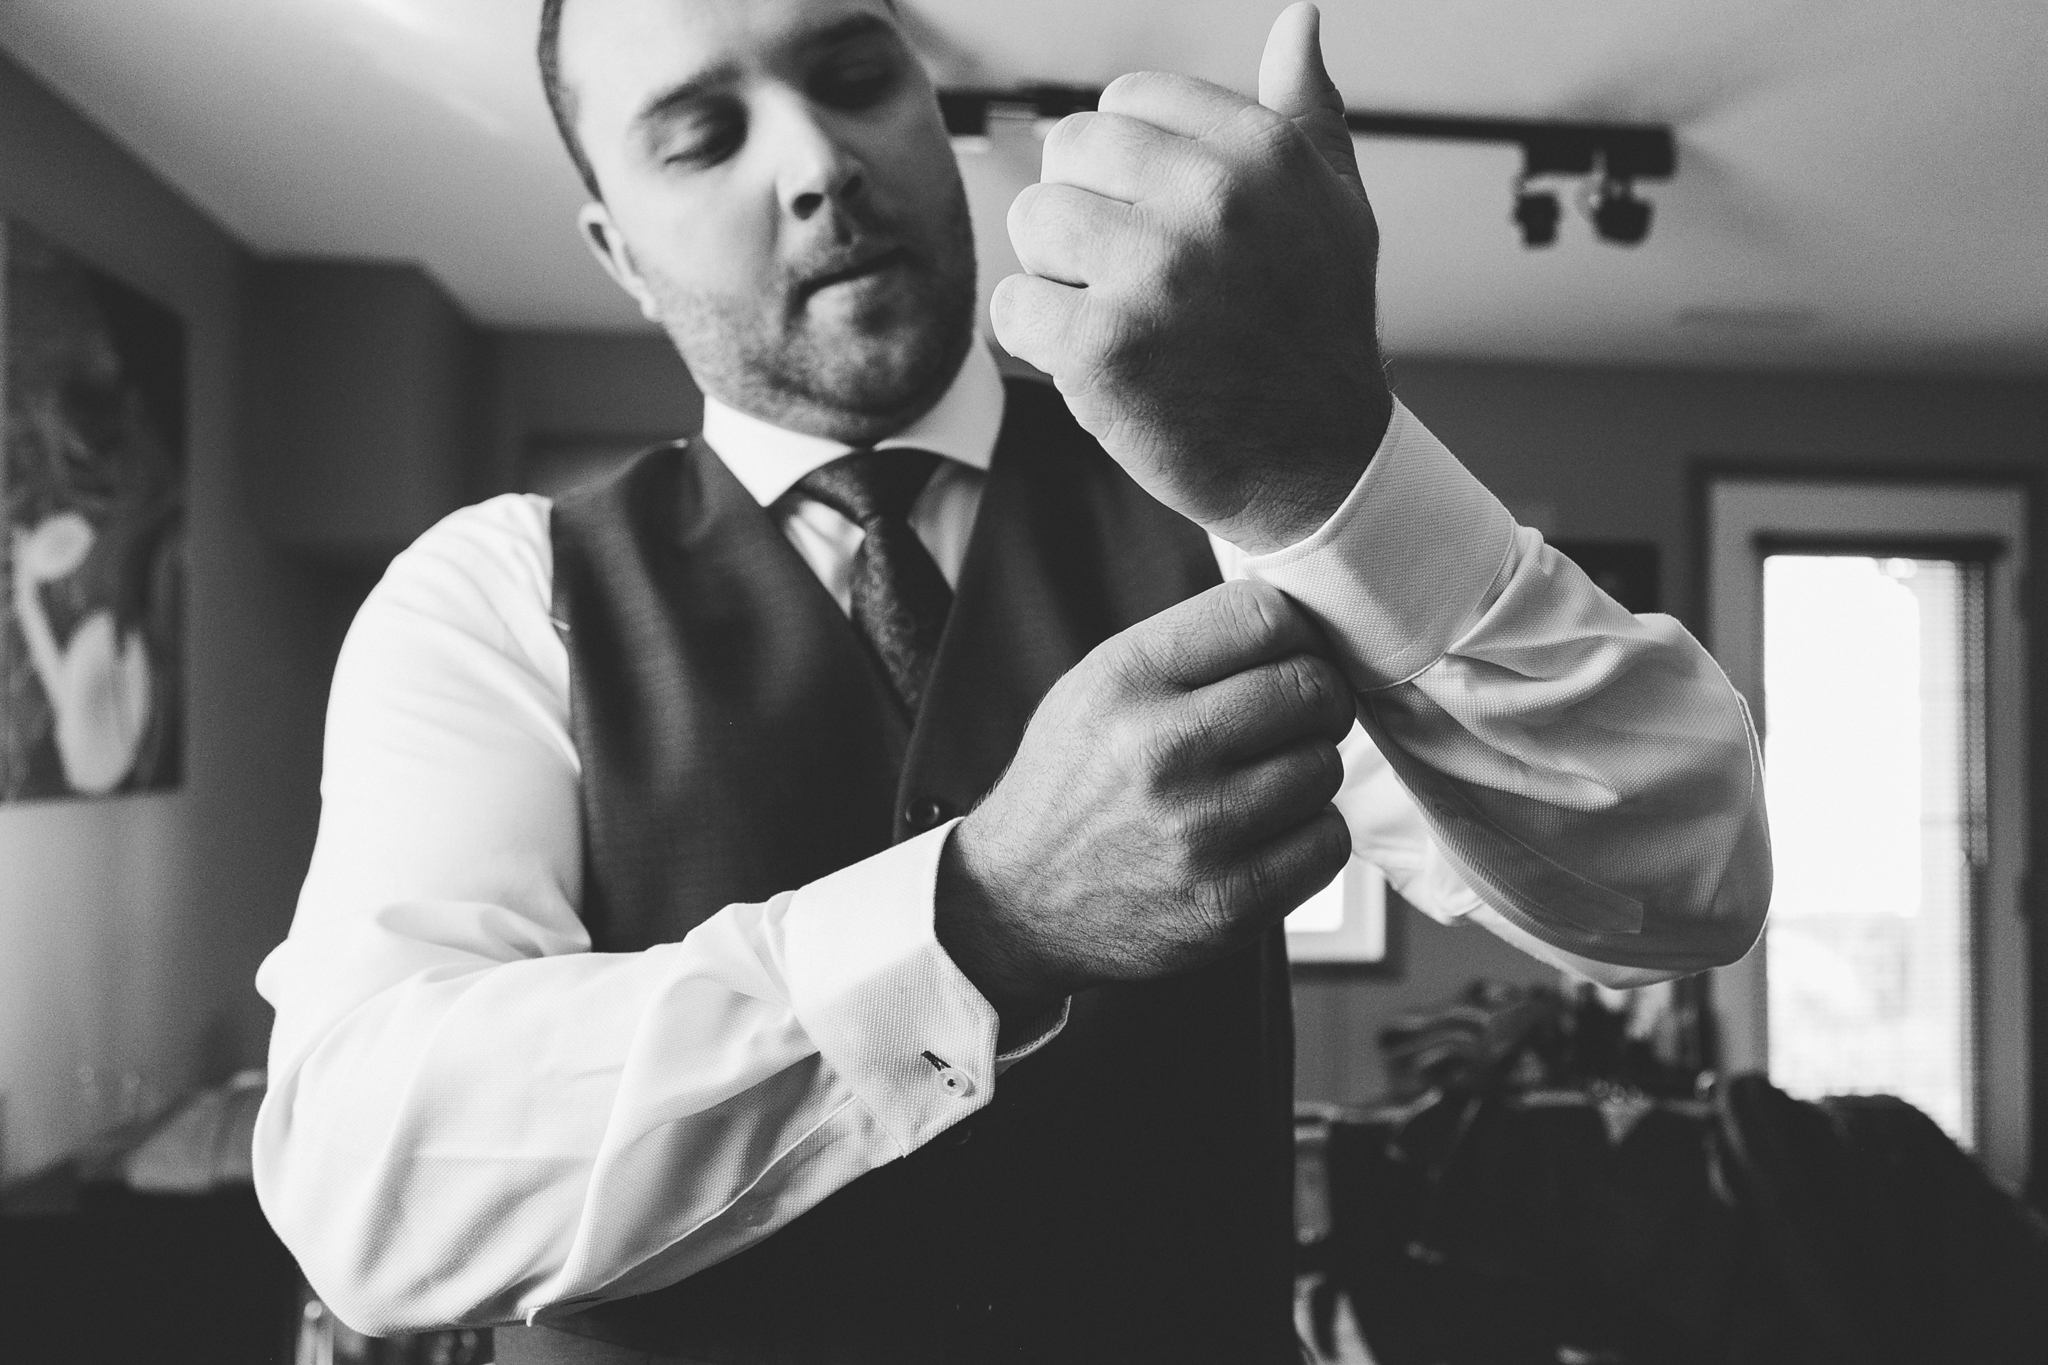 lethbridge-wedding-photographer-love-and-be-loved-photography-groom-prep-photo-image-picture-11.jpg